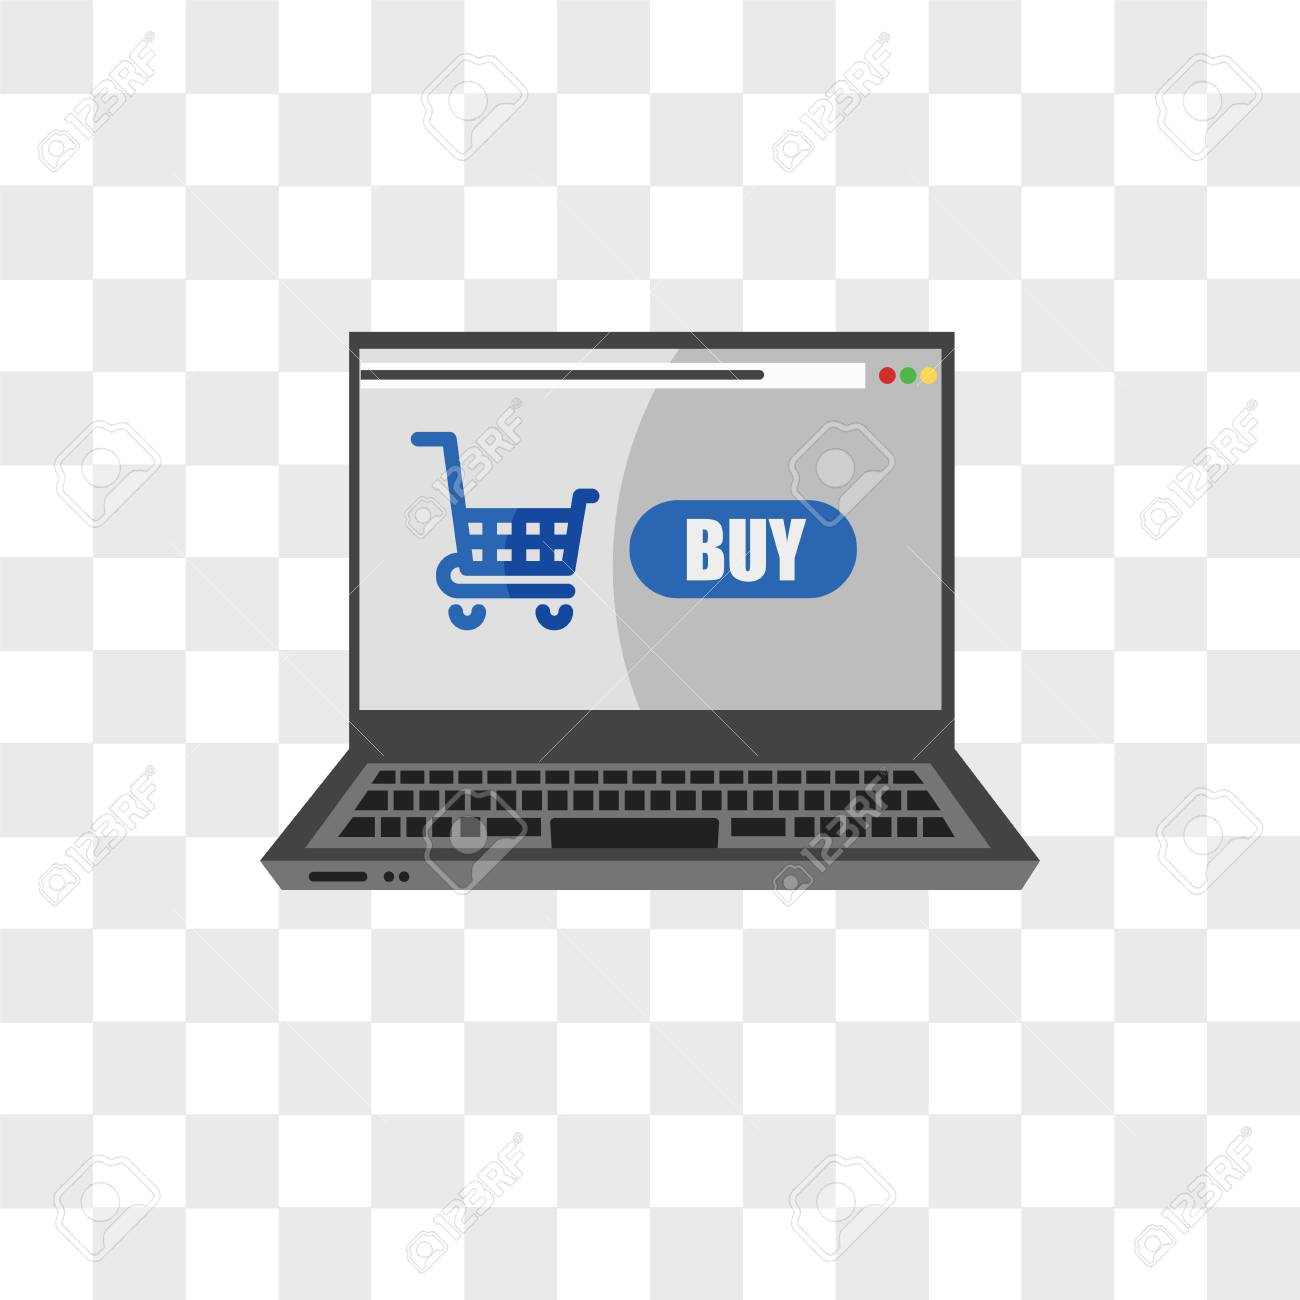 Online Shop Vector Icon Isolated On Transparent Background Online Royalty Free Cliparts Vectors And Stock Illustration Image 108188880